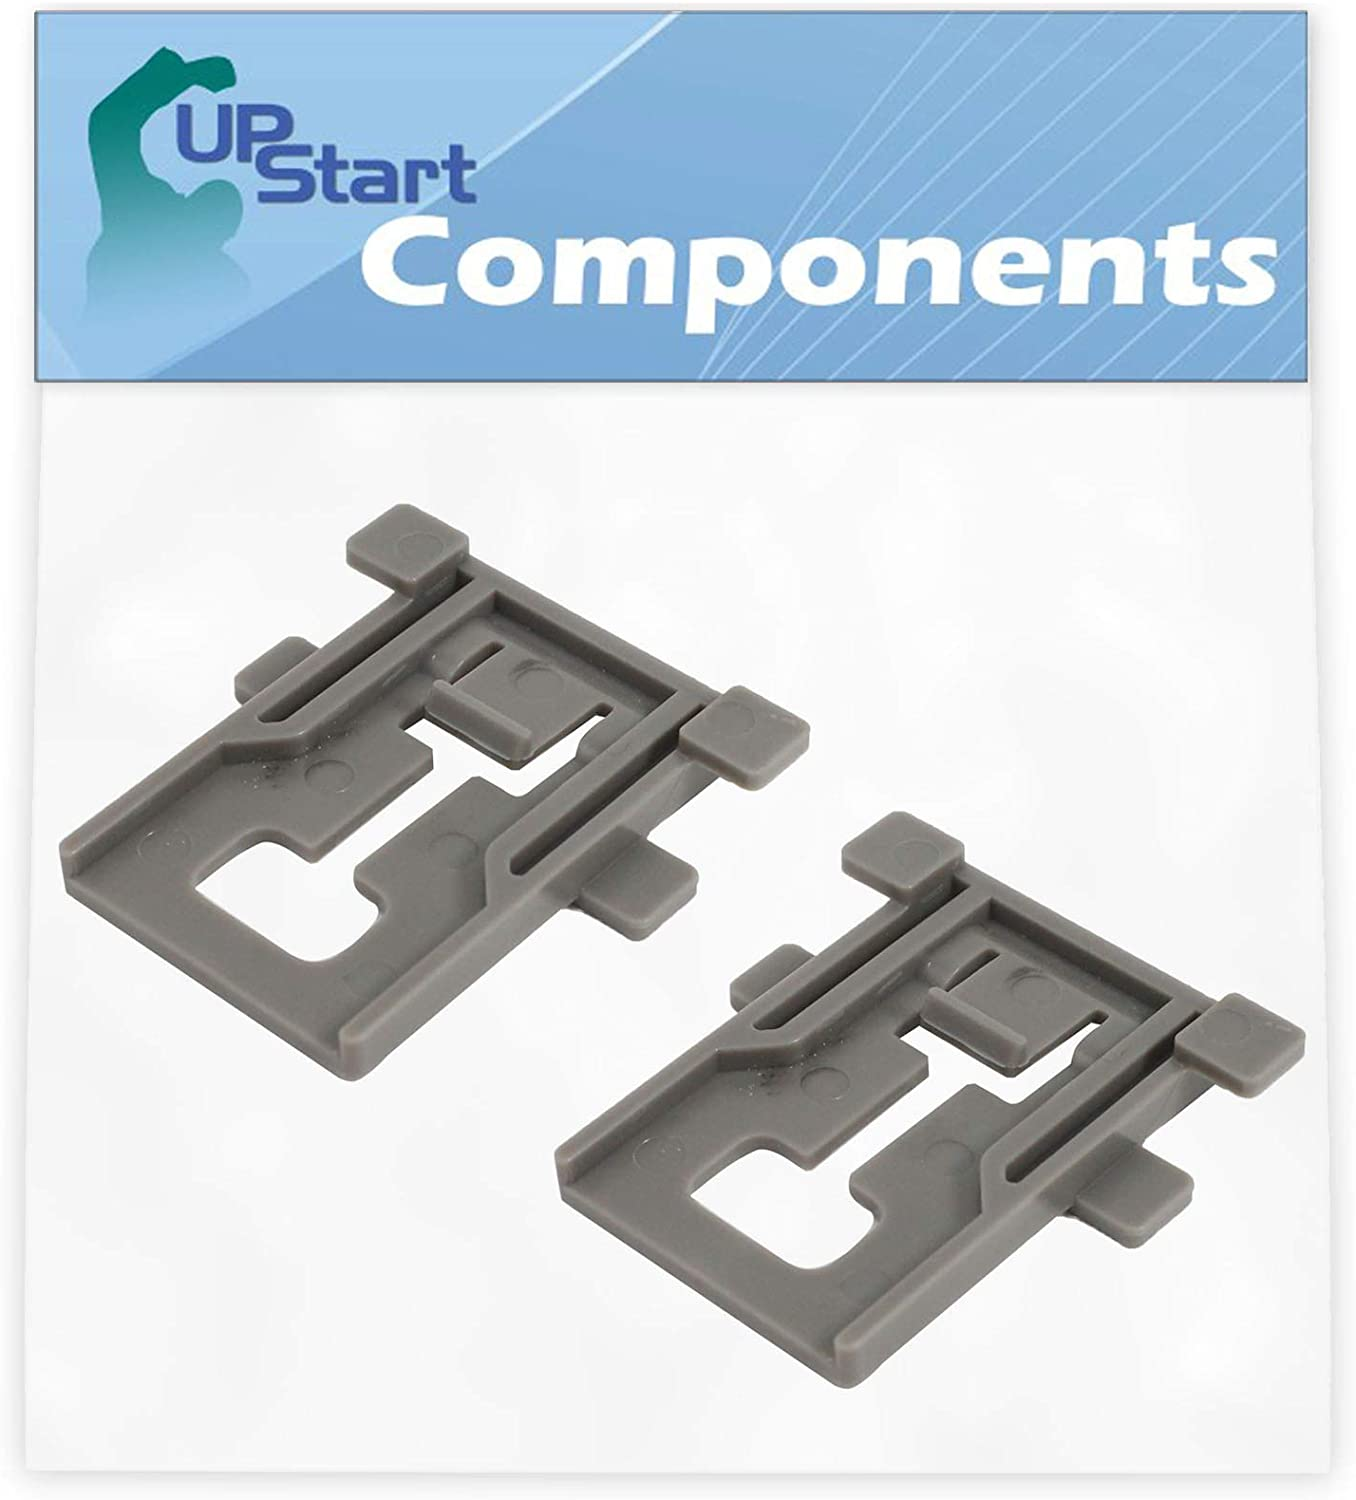 2-Pack W10195840 Dishwasher Rack Adjuster Replacement for Kenmore/Sears 665.13269K114 Dishwasher - Compatible with WPW10195840 Top Rack Adjuster